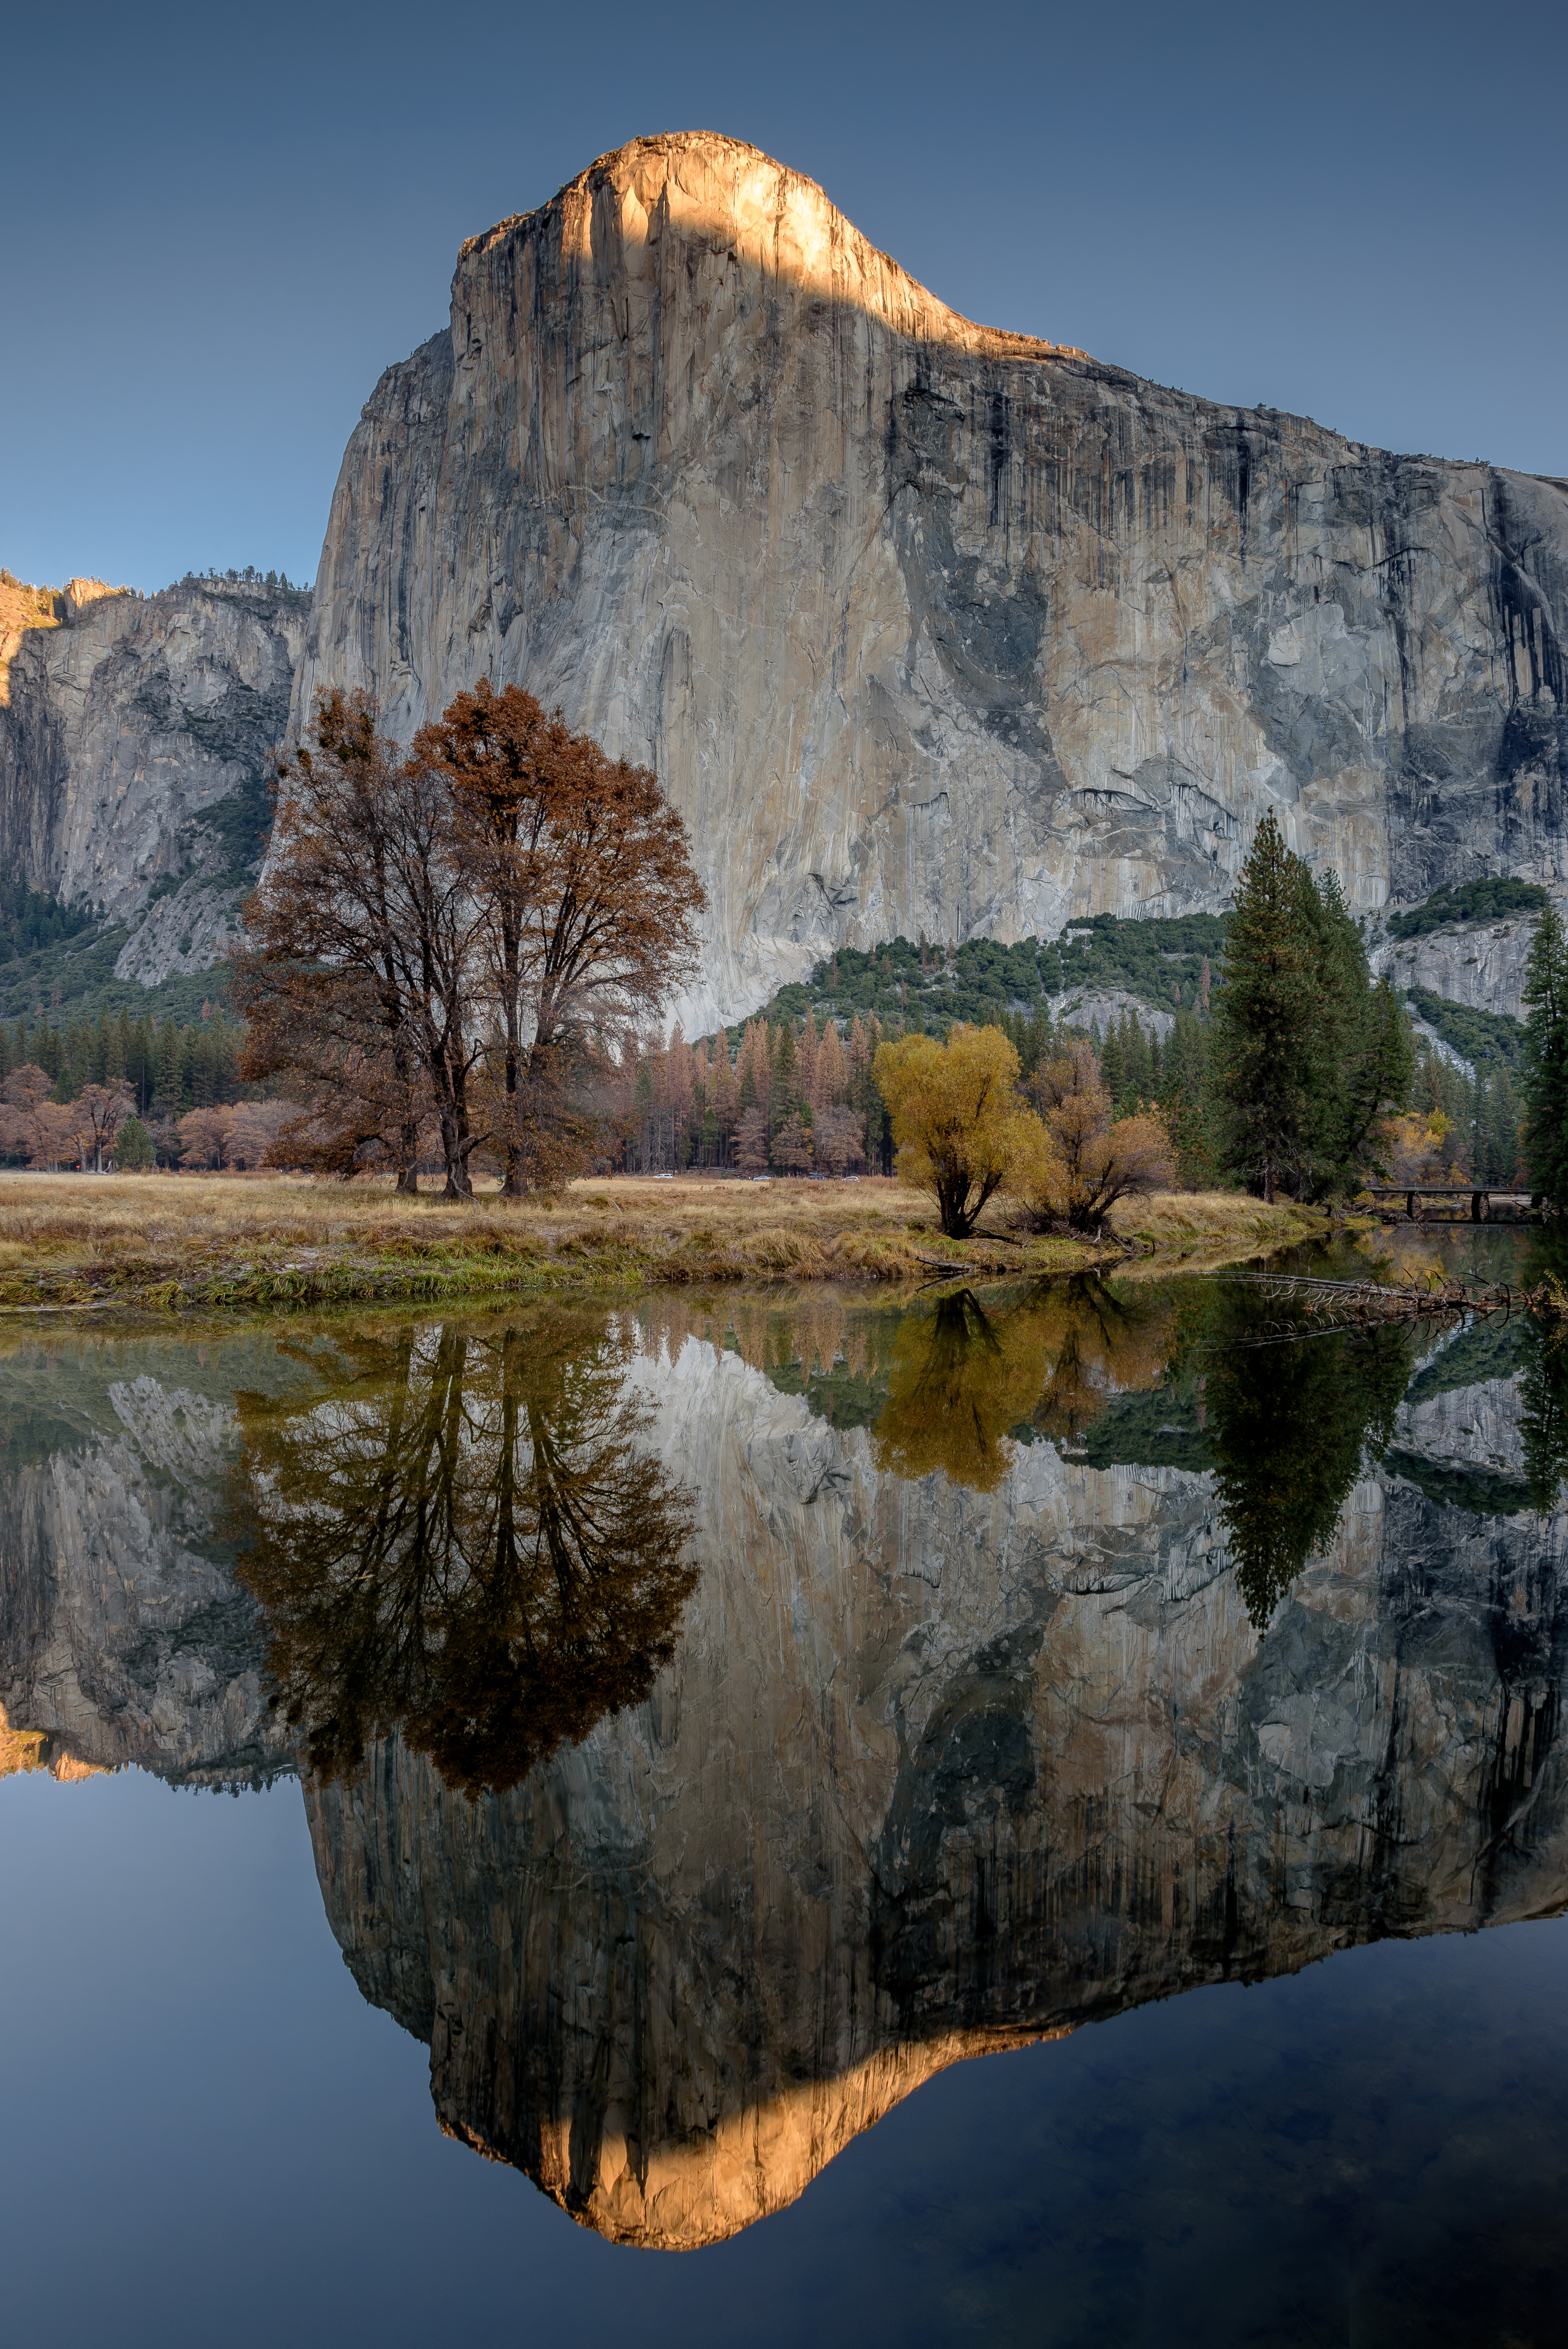 Yosemite Valley - El Capitan, Morning Light